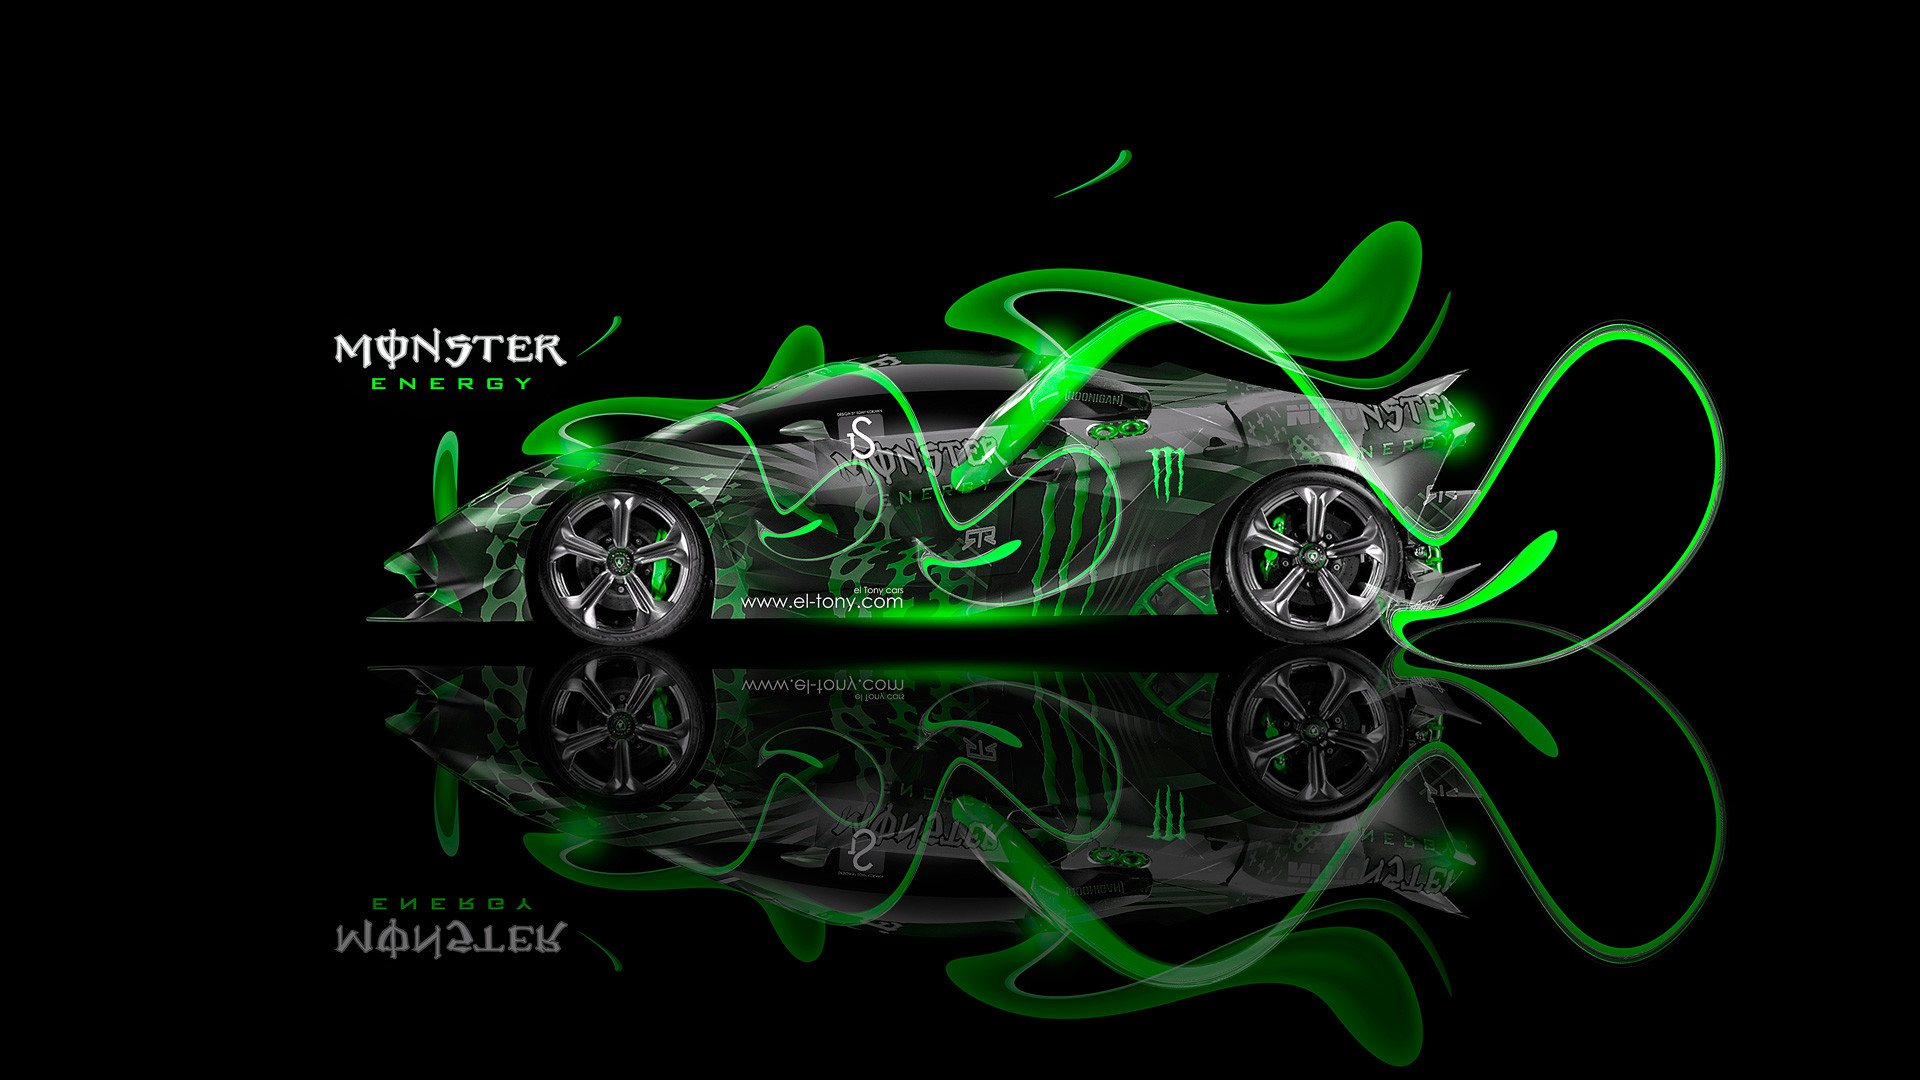 Etonnant 1920x1080 Monster Energy Ford Mustang GT Fantasy Green Acid 2013 Design By Tony Kokhan Www.el Tony.com_  (1920Ãu20141080) | Ideas For A Car | Pinterest ...